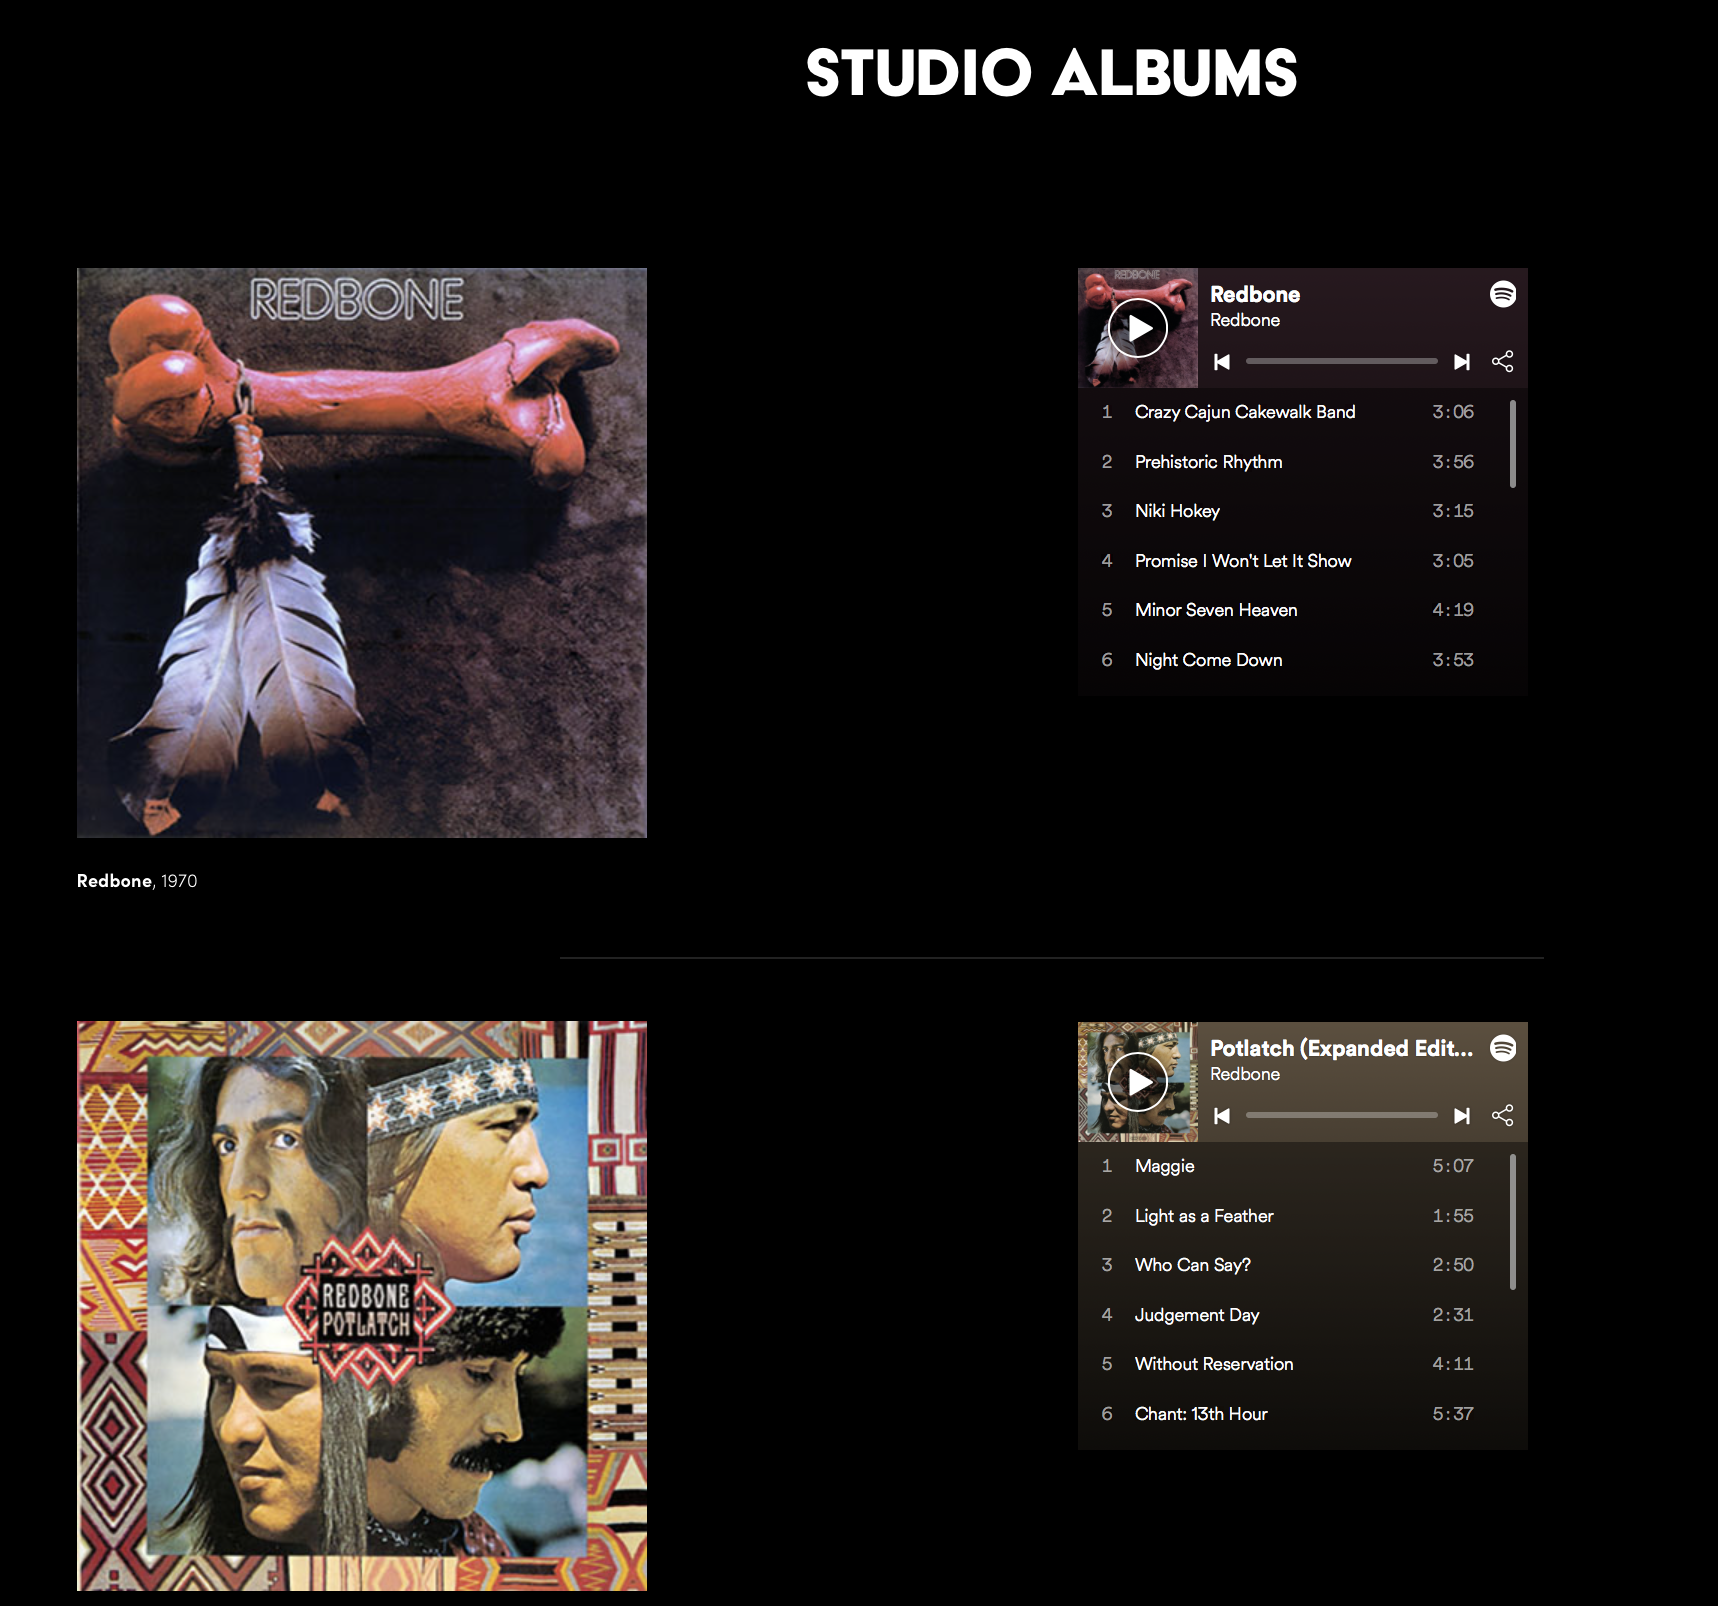 Visit the Music page and Listen to Redbone's songs -